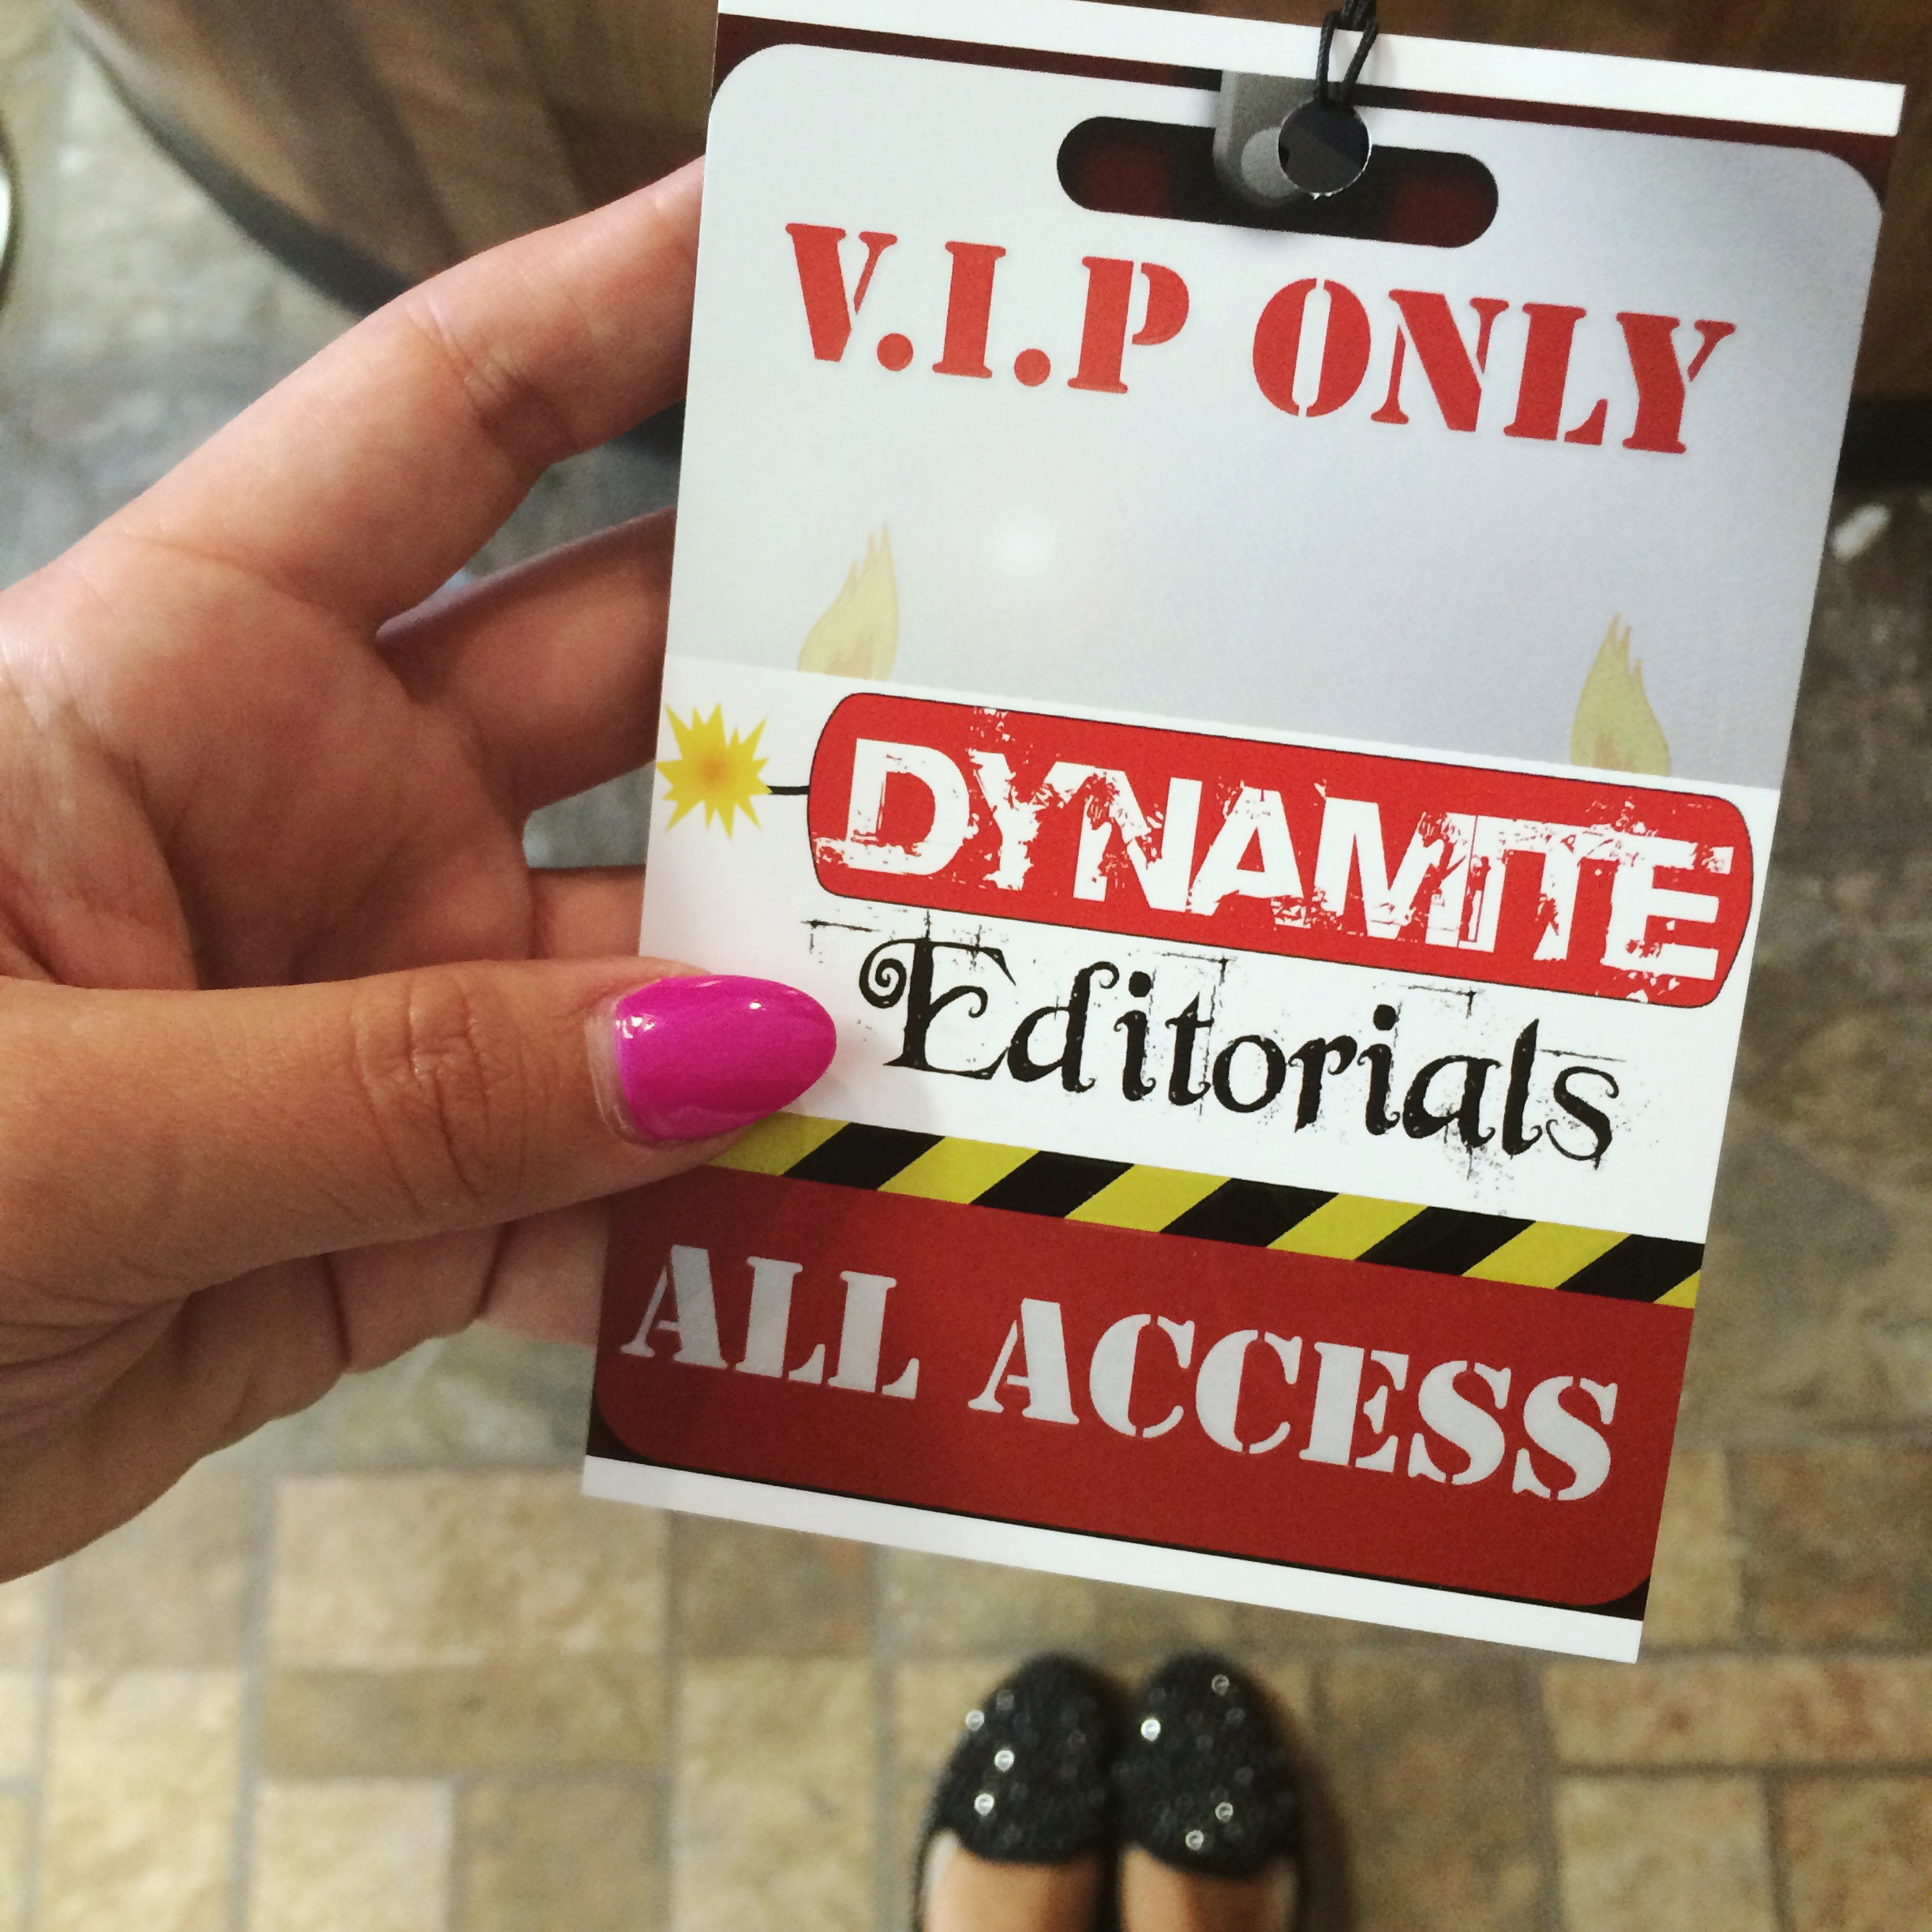 Behind the Scenes at Mint Salon Vintage Photo Shoot VIP Pass